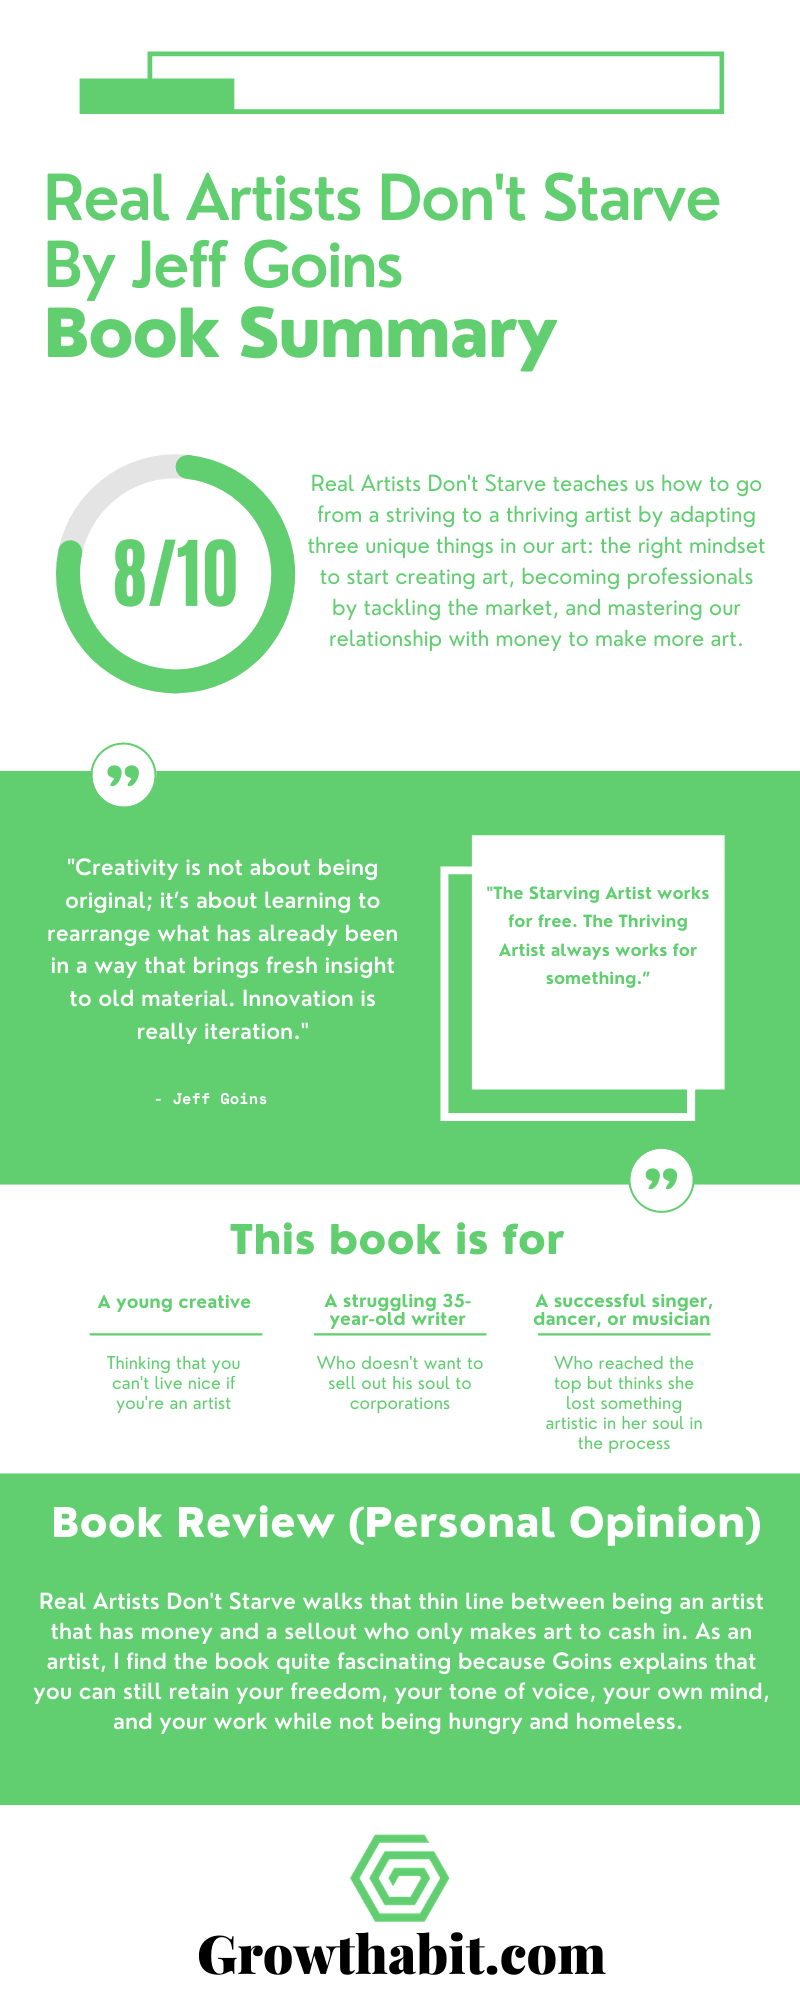 Real Artists Don't Starve - Jeff Goins Book Summary Infographic